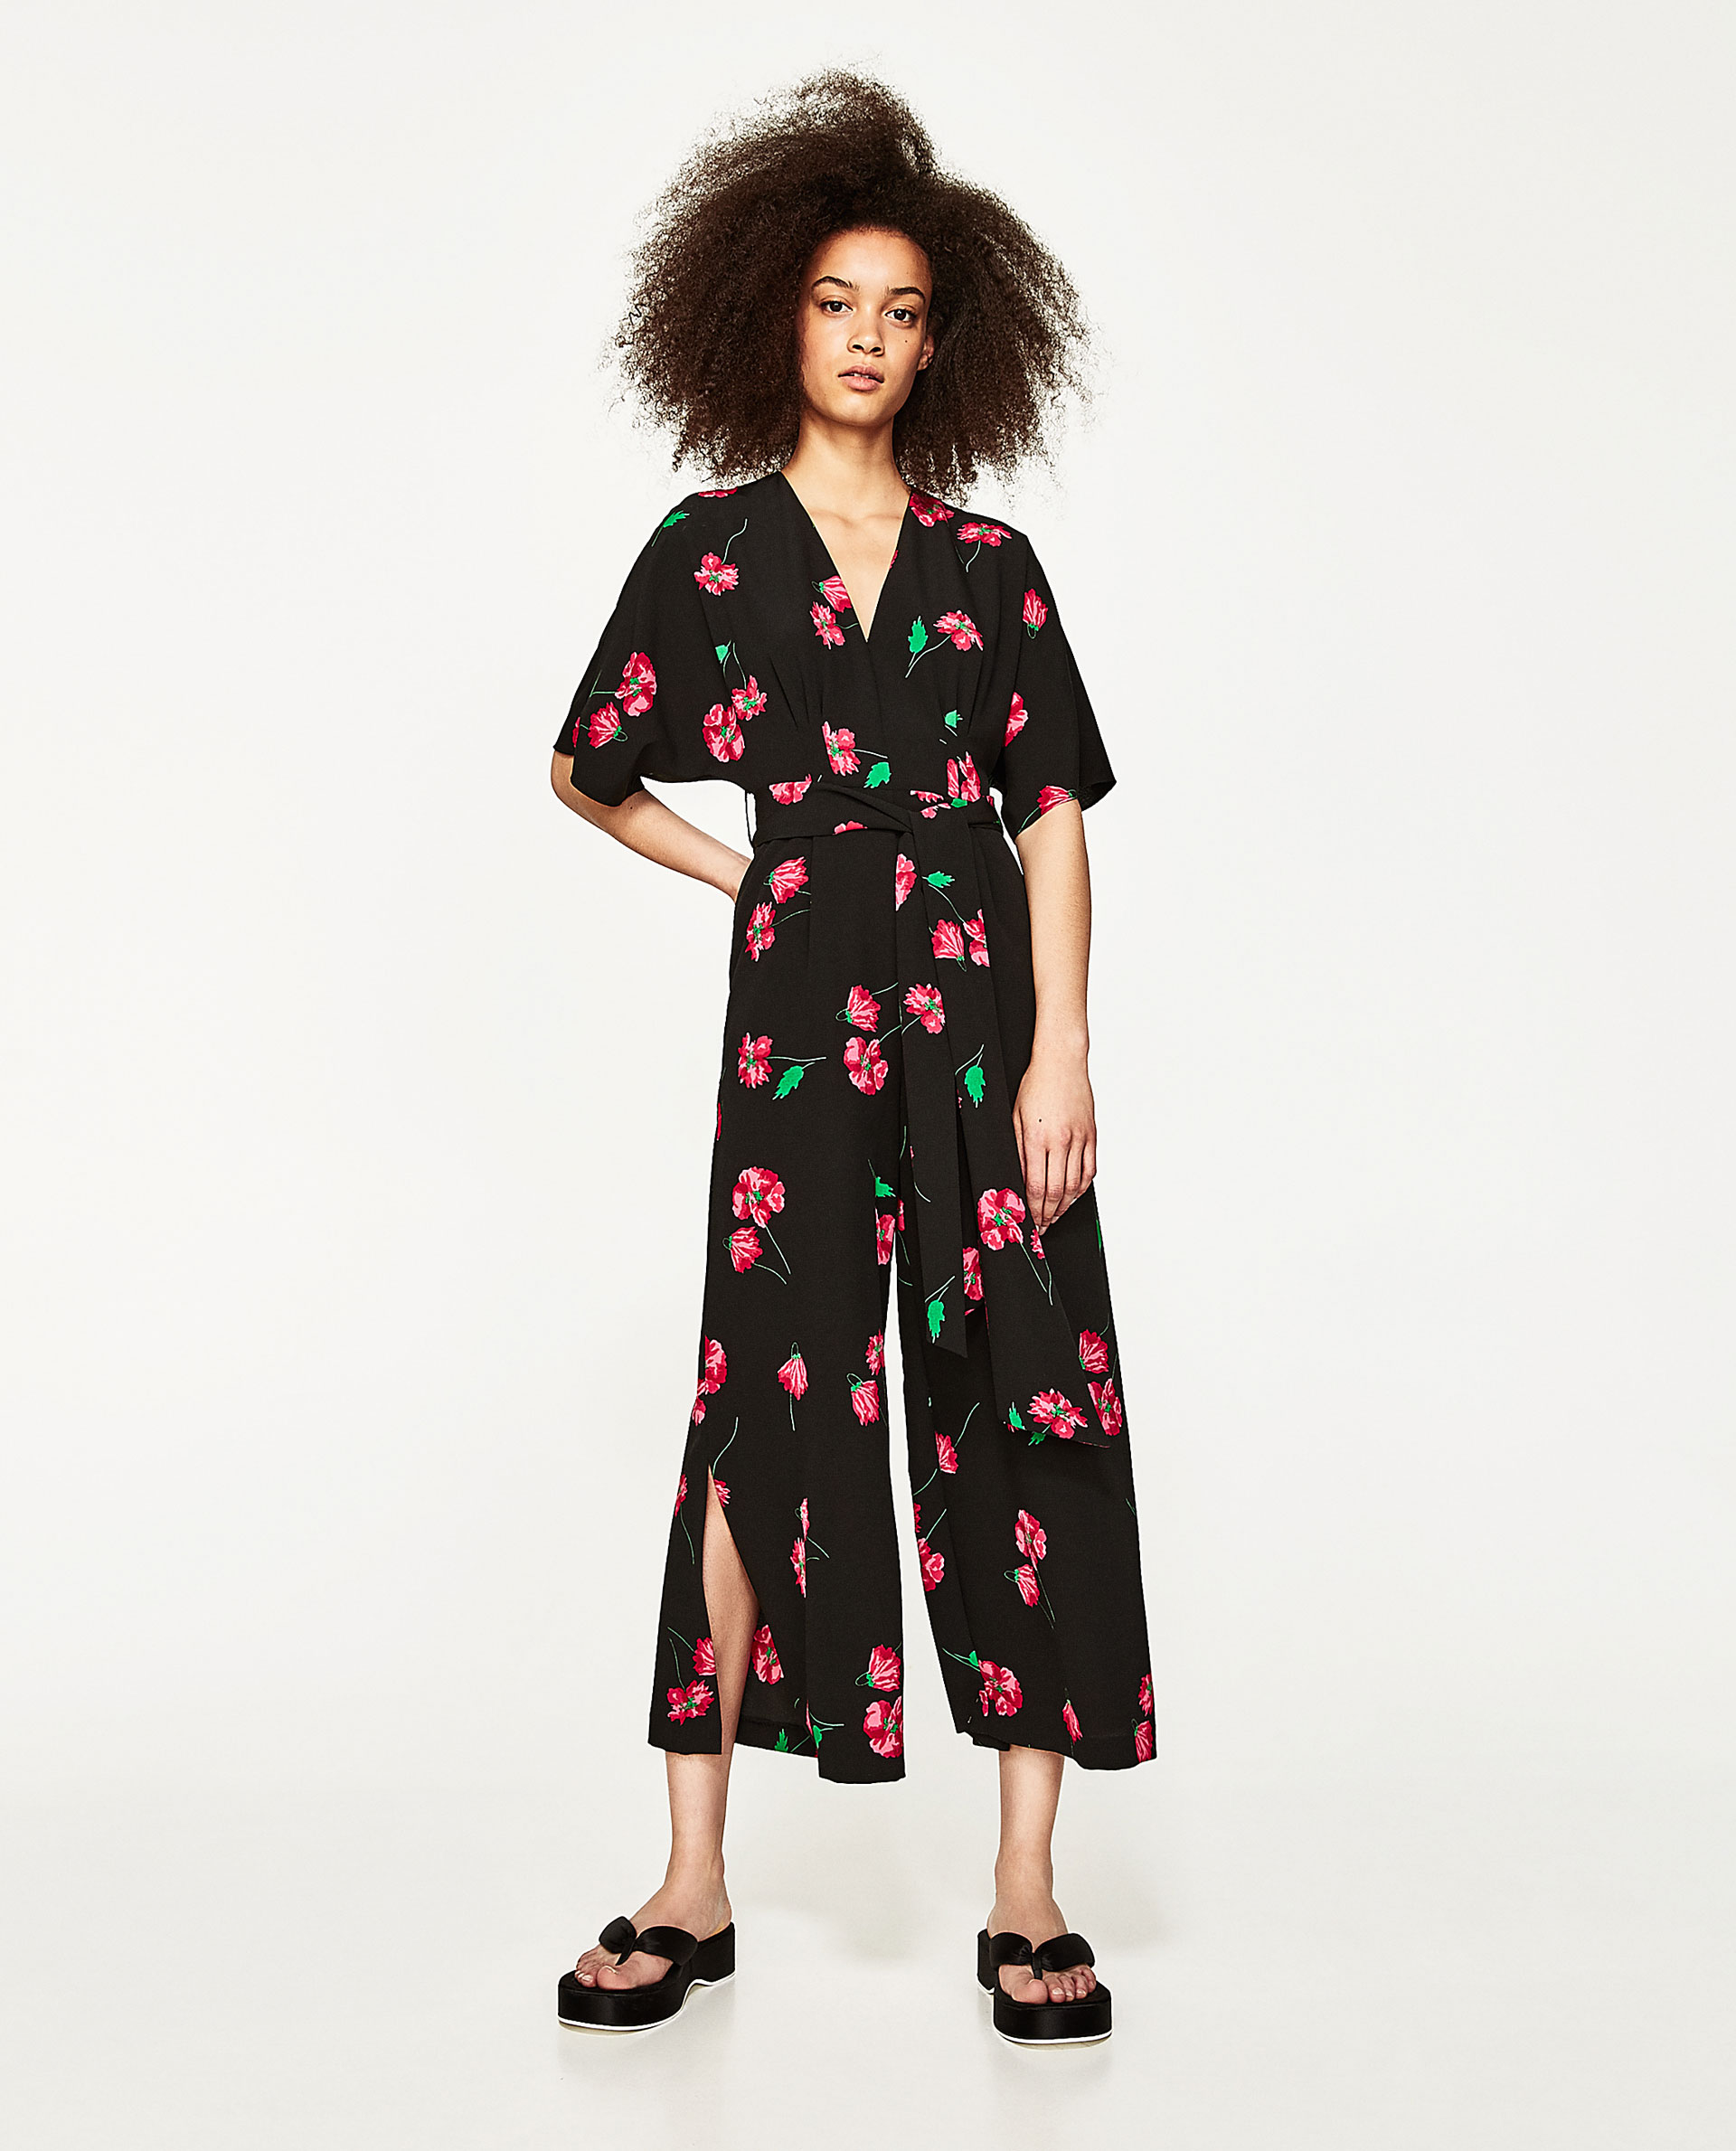 Another  Zara  jumpsuit £49.99. Ignore the casual styling here and pick a fierce shoe to dress it up. Continue on a 70s vibe with these  Dune  platforms or keep it lower to the ground with these mid heel  sandals .